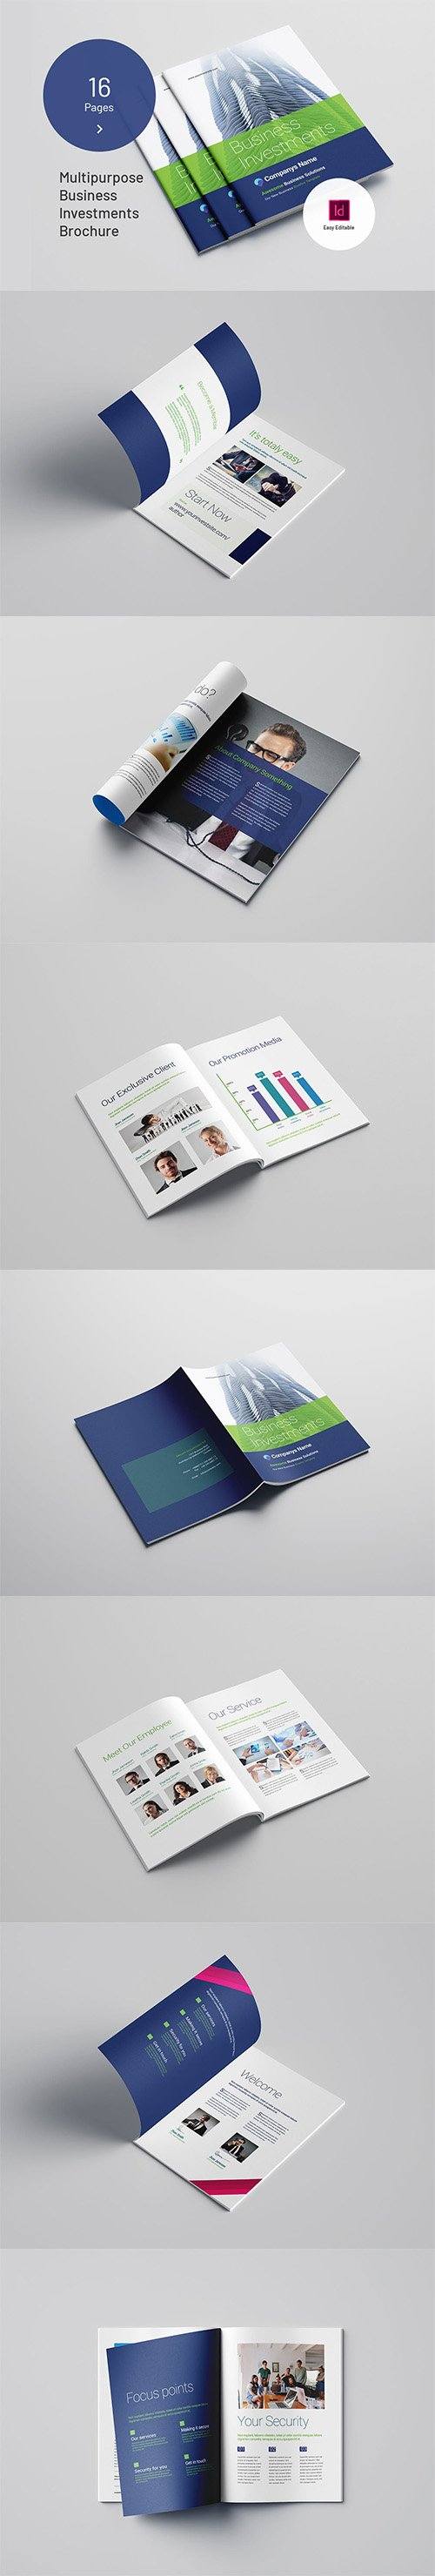 Multipurpose Business Investments Brochure